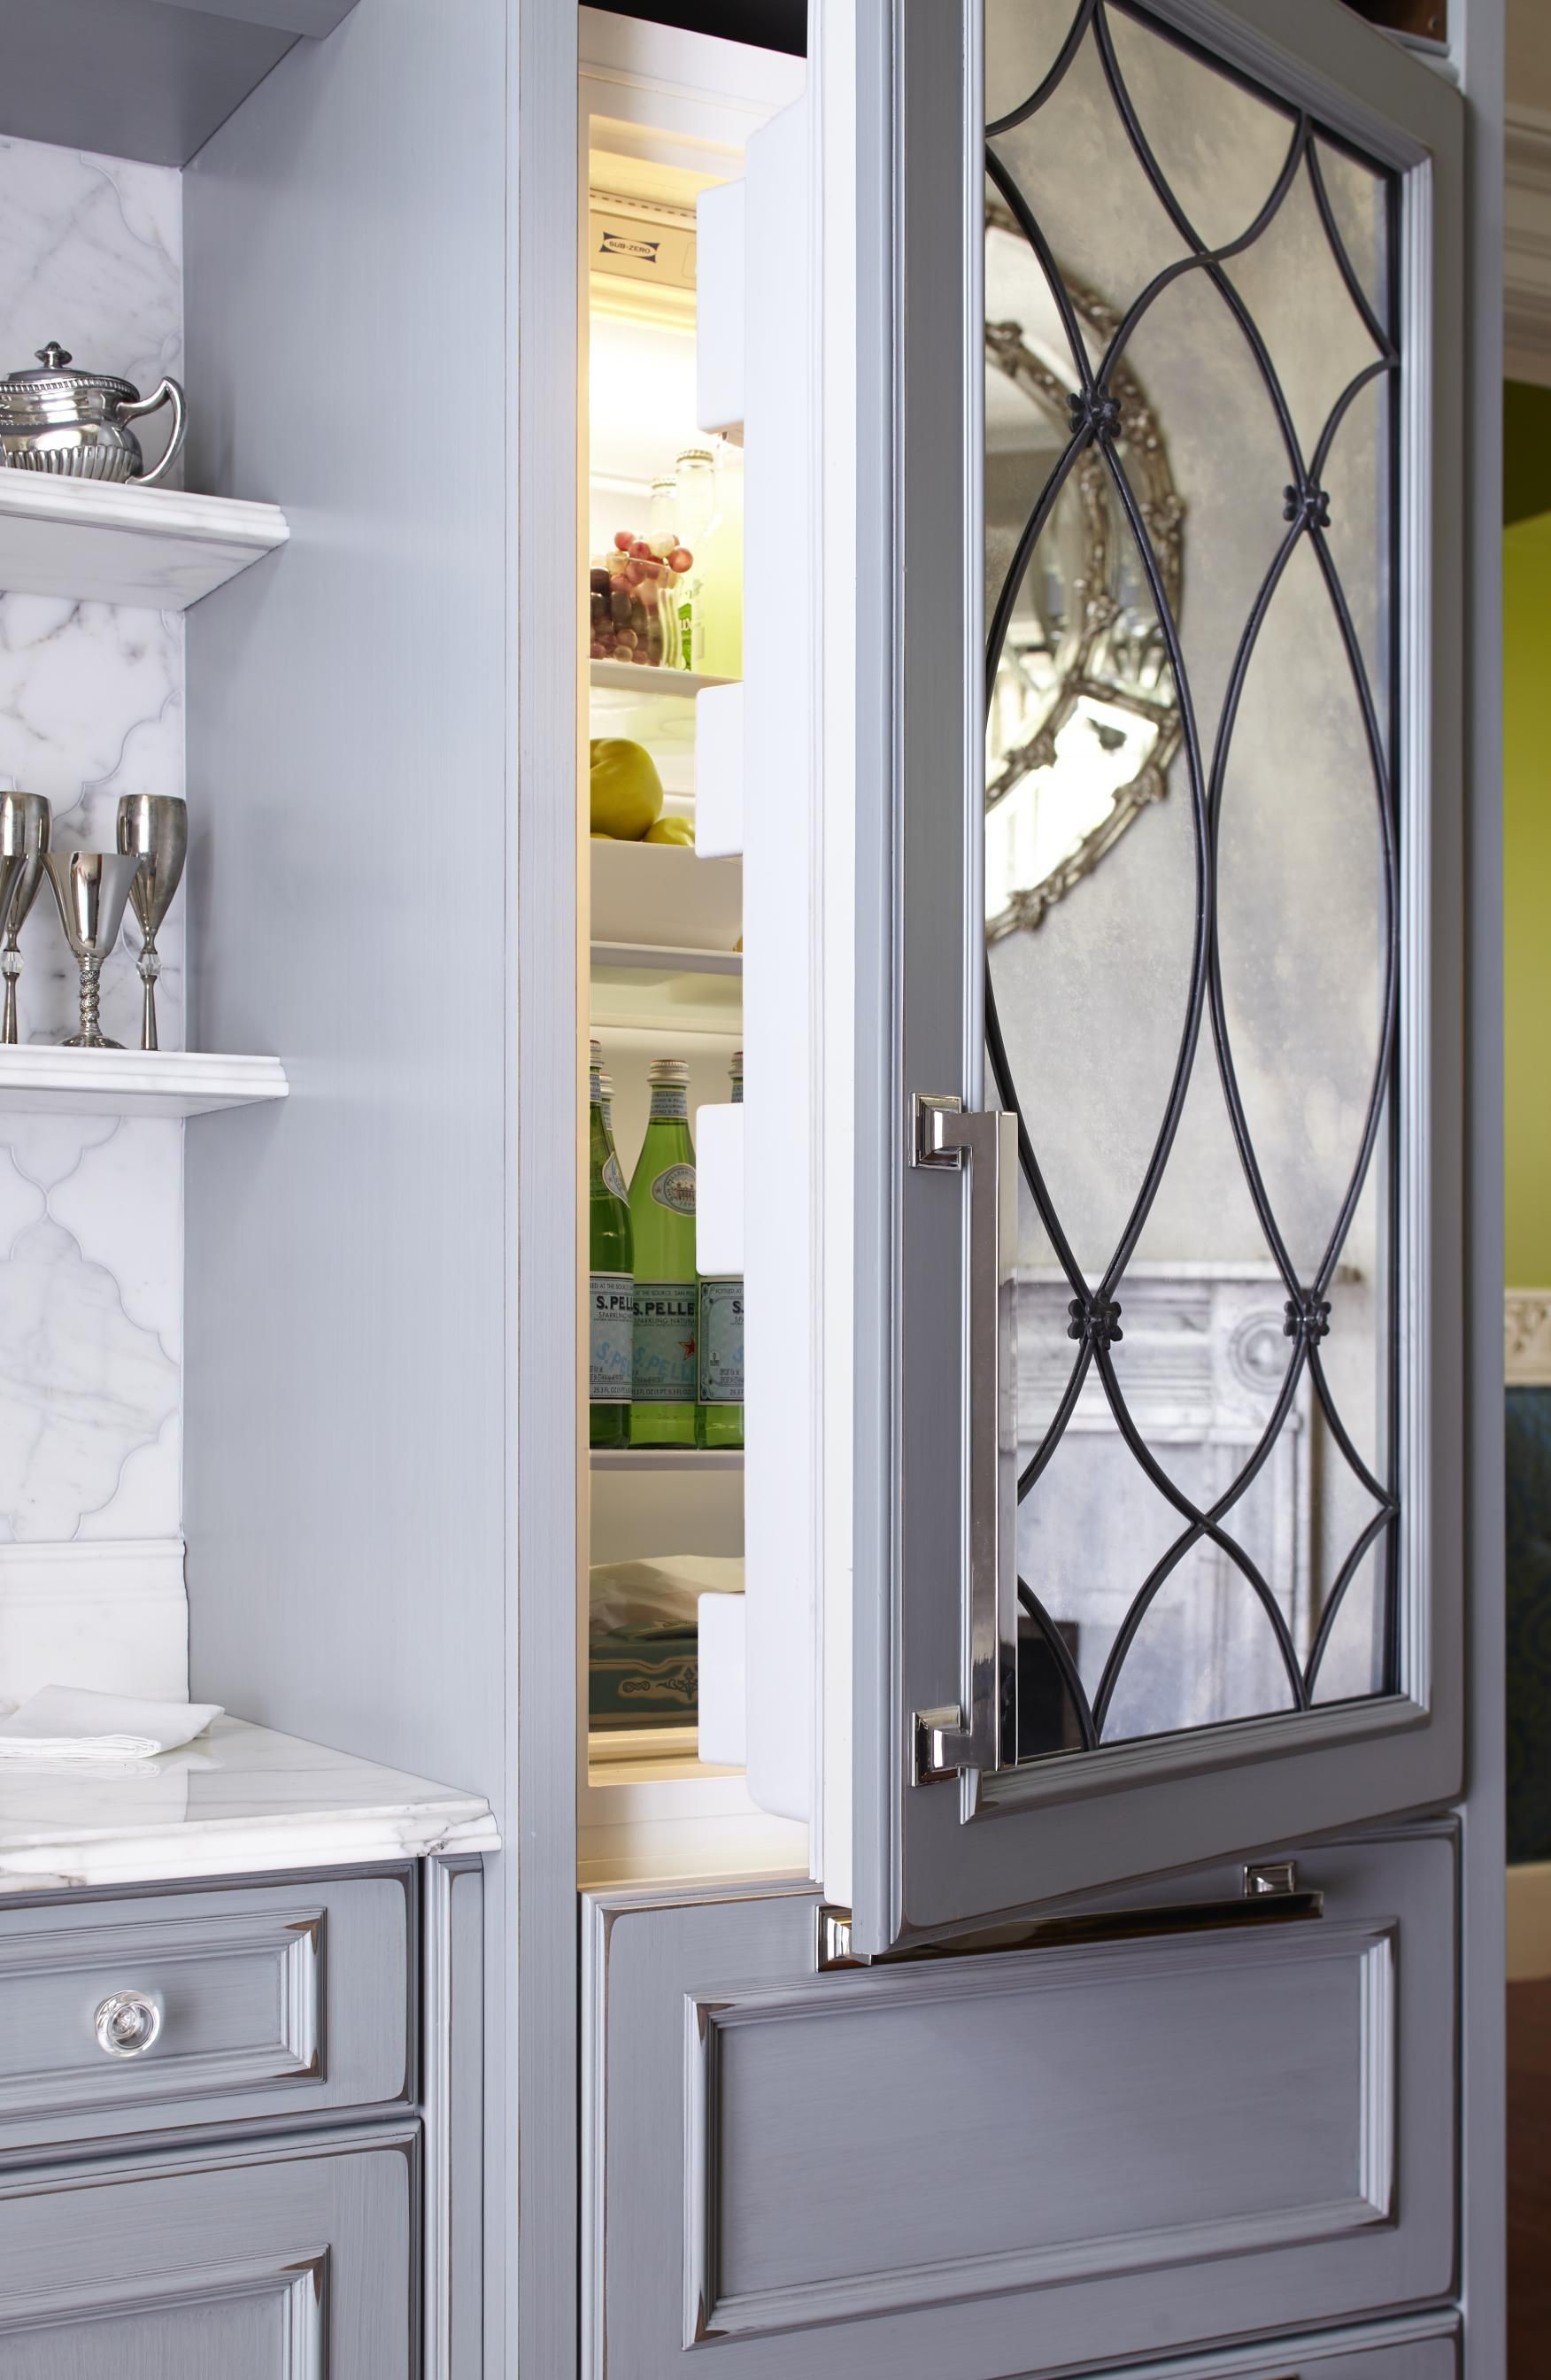 Small but Luxurious Kitchens & Baths